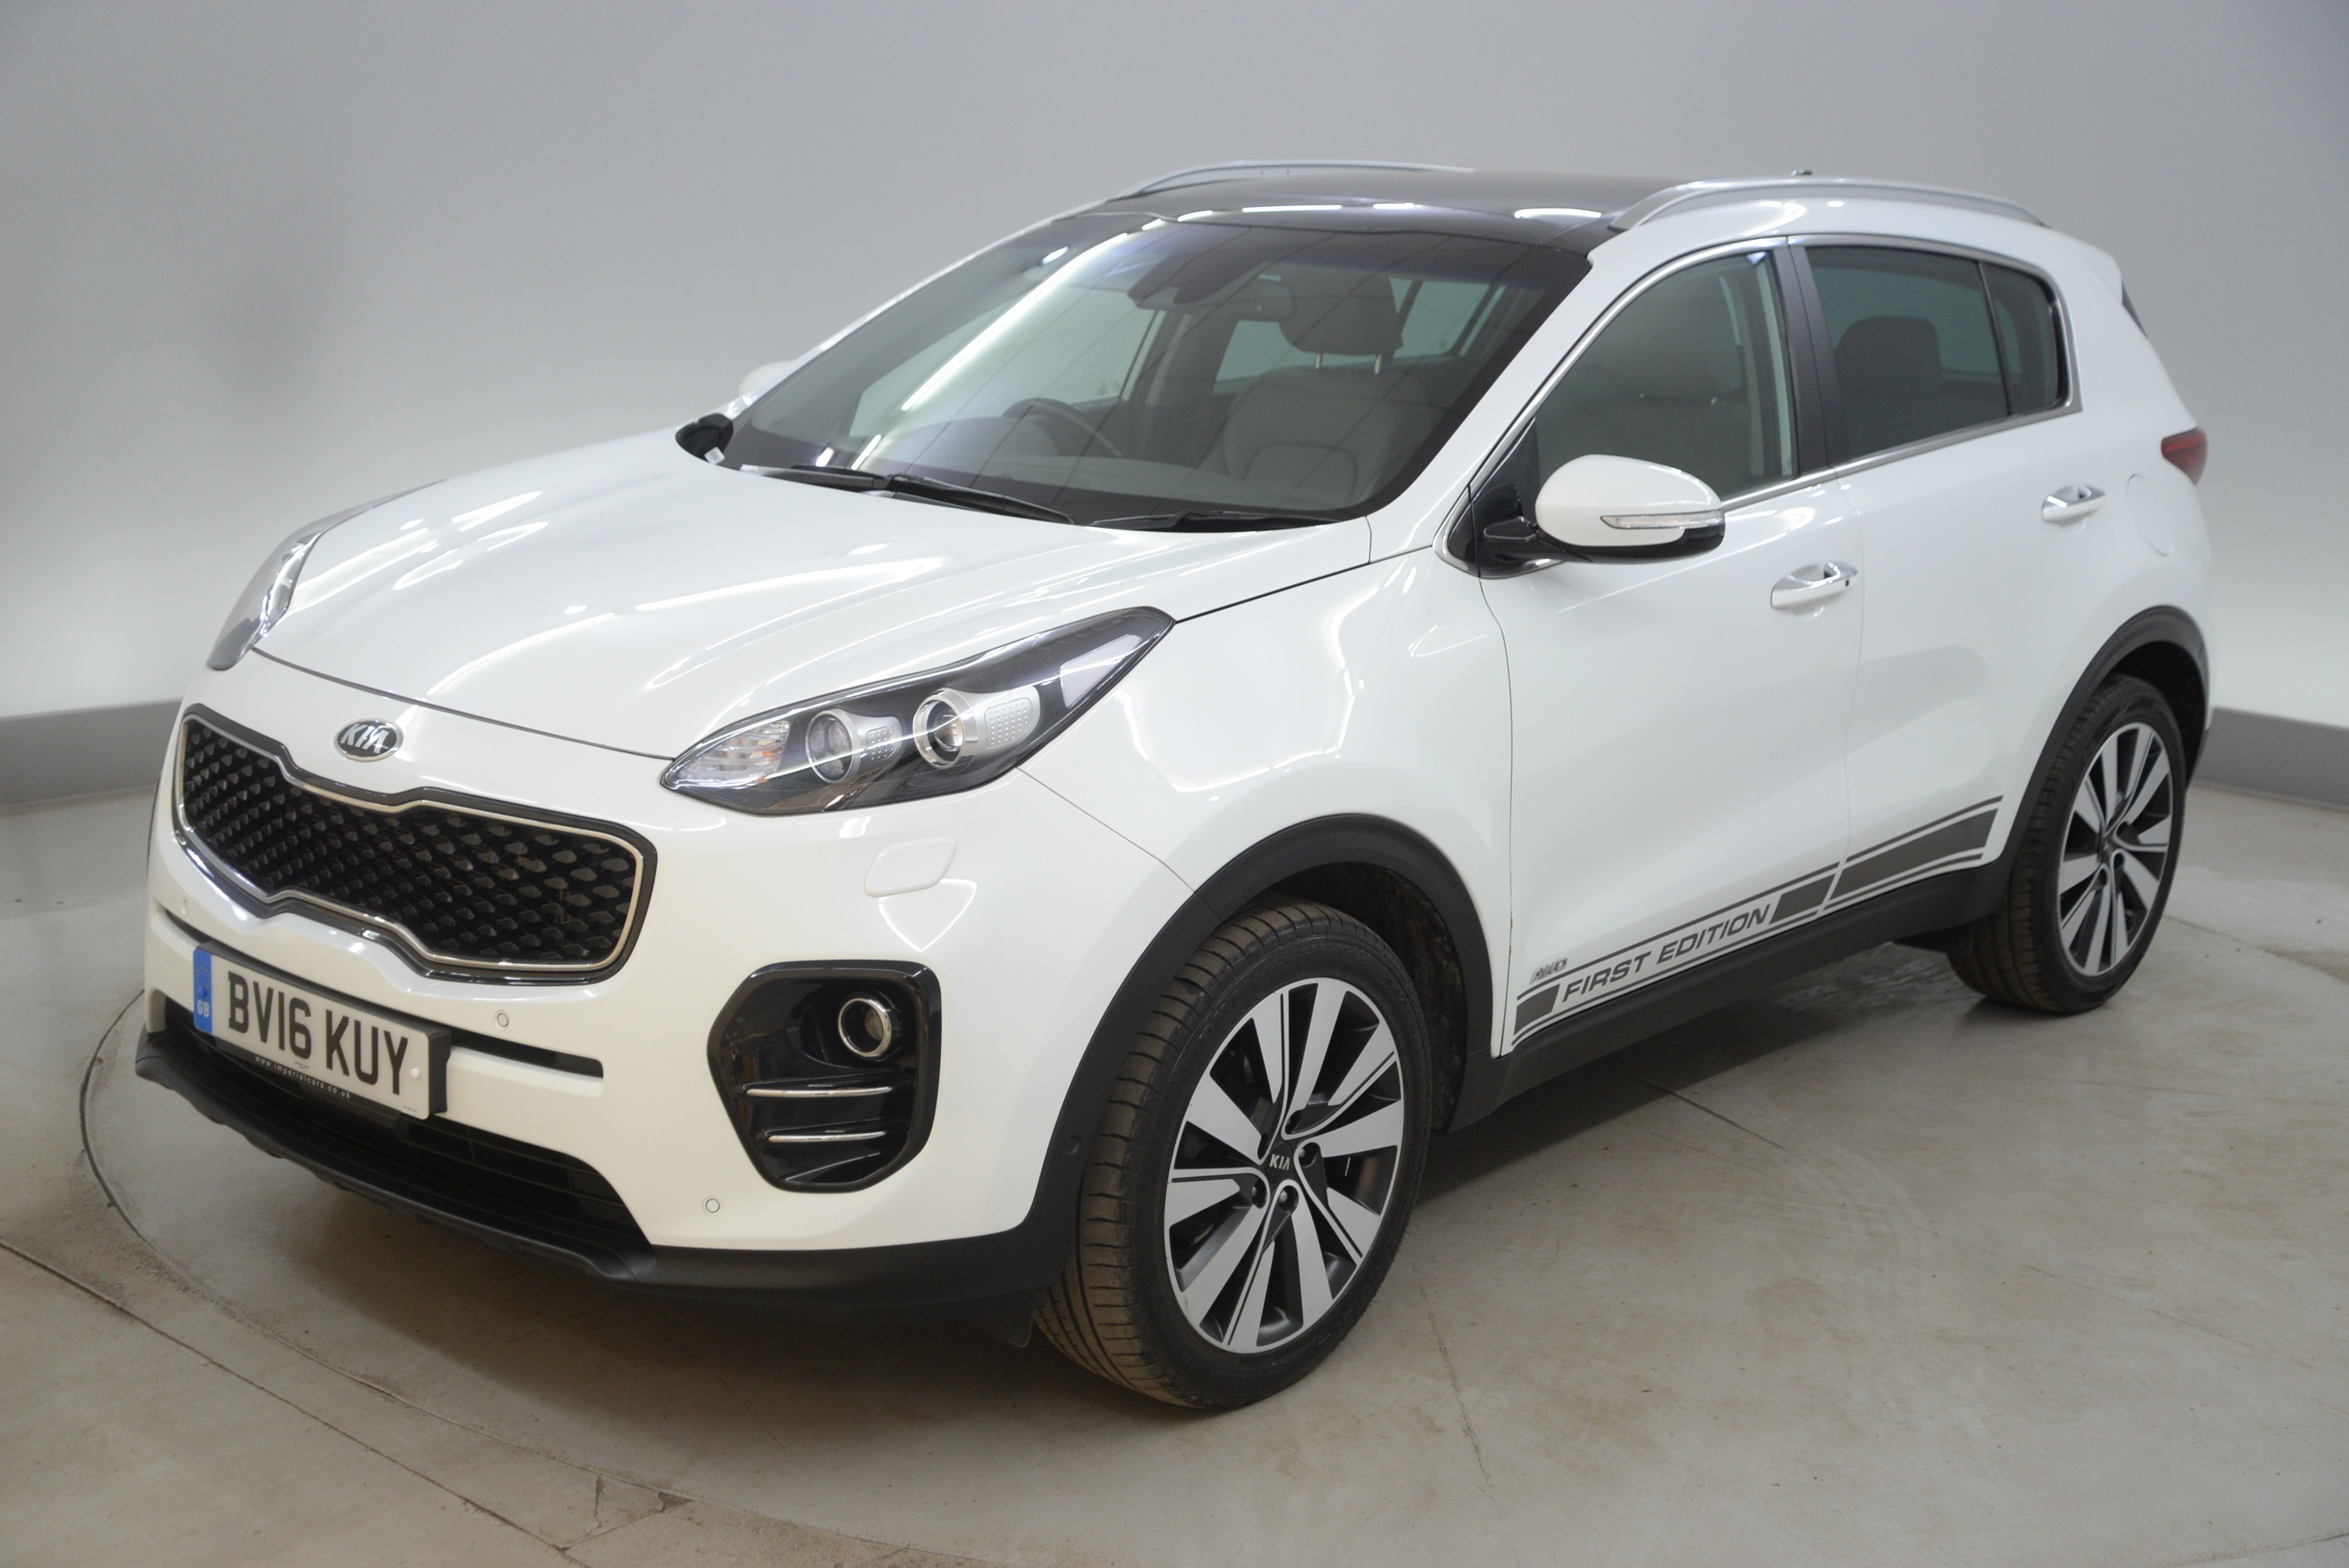 car bought best of to dealers kia be body family shop mn auto near me abra dealer